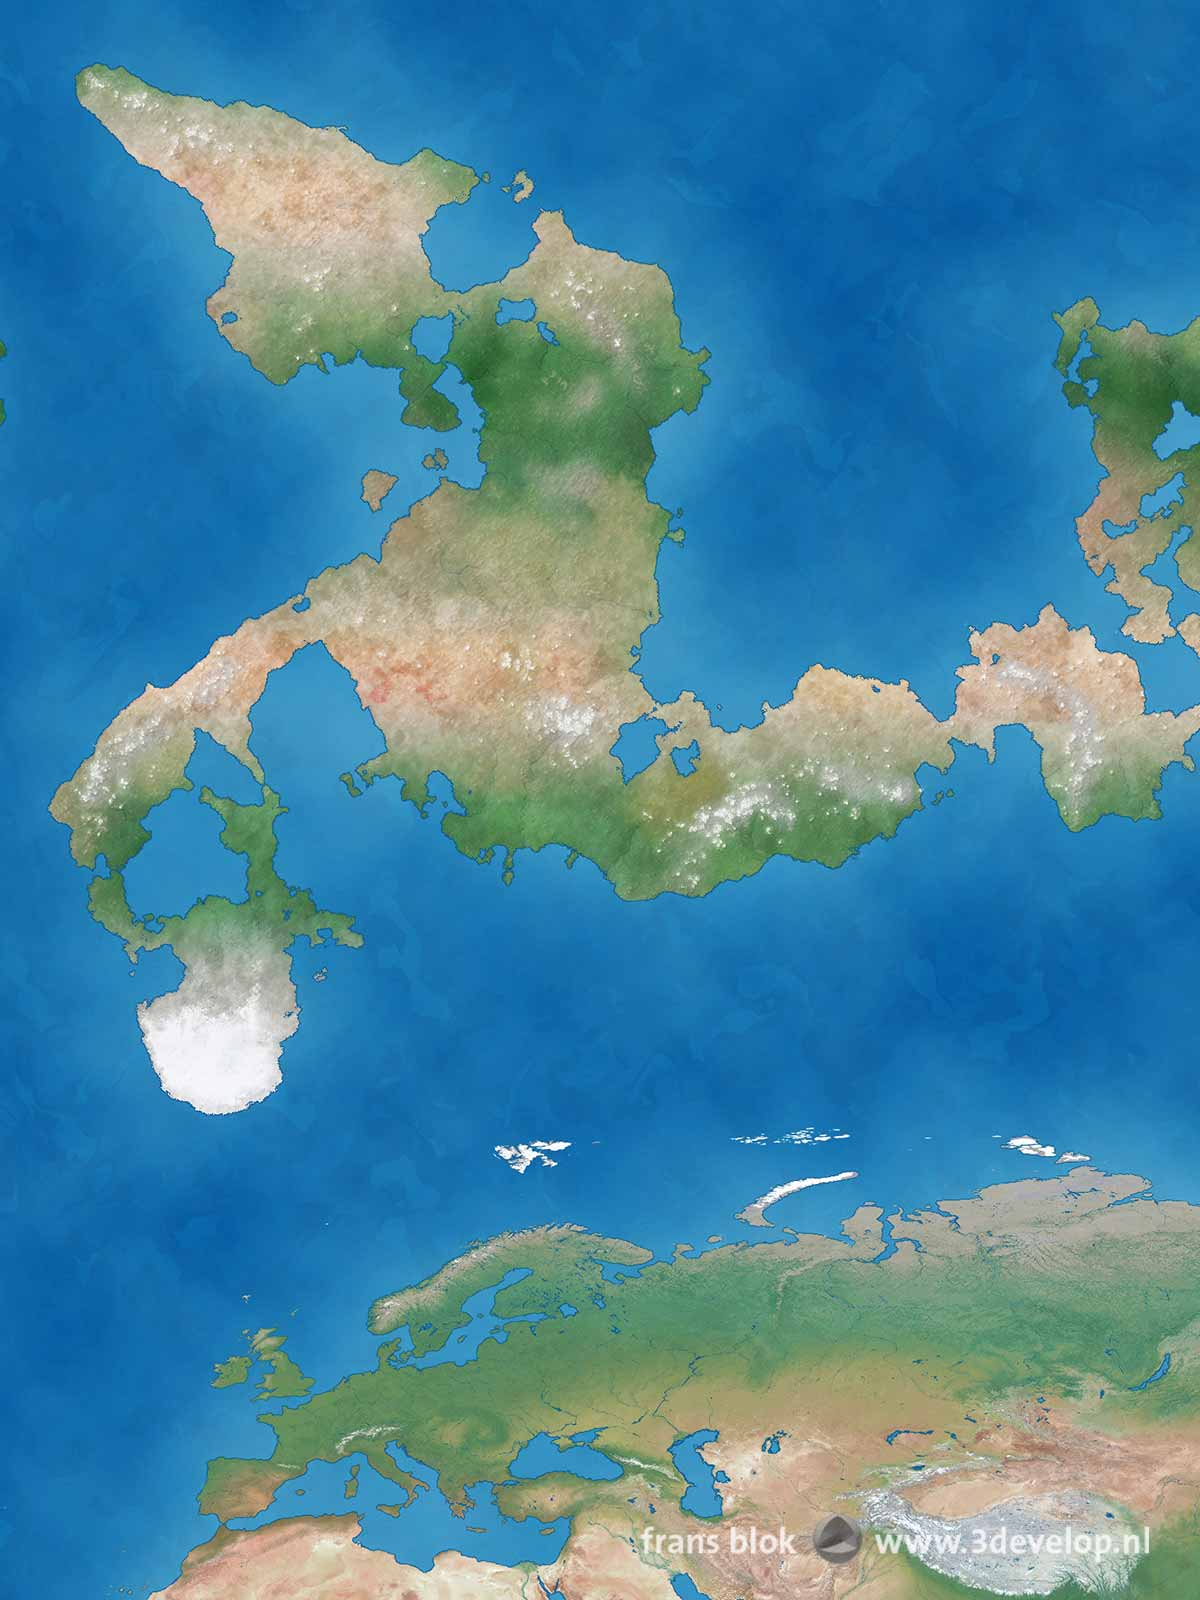 Detail of a world map of a hypothetical Flat Earth, with Europe, Asia and a large continent to the north